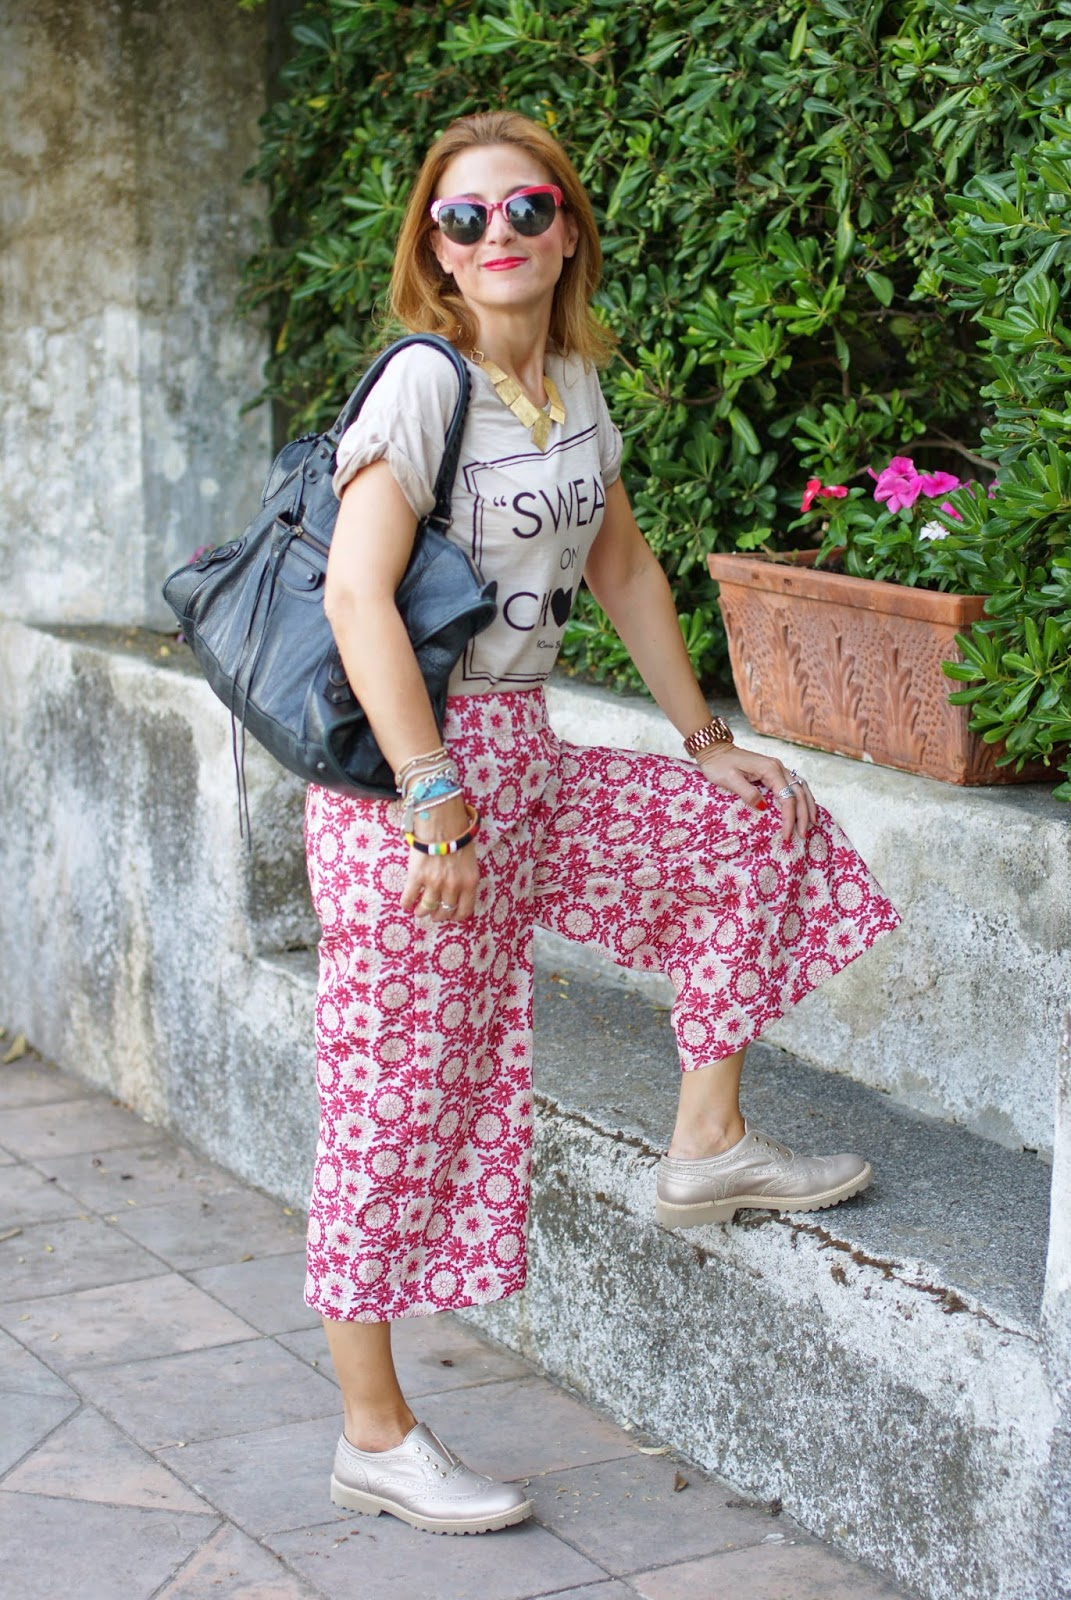 Swear on Chanel t-shirt, platinum oxfords, Spitfire sunglasses, Balenciaga work bag, Rose a pois culottes pants, Fashion and Cookies, fashion blogger